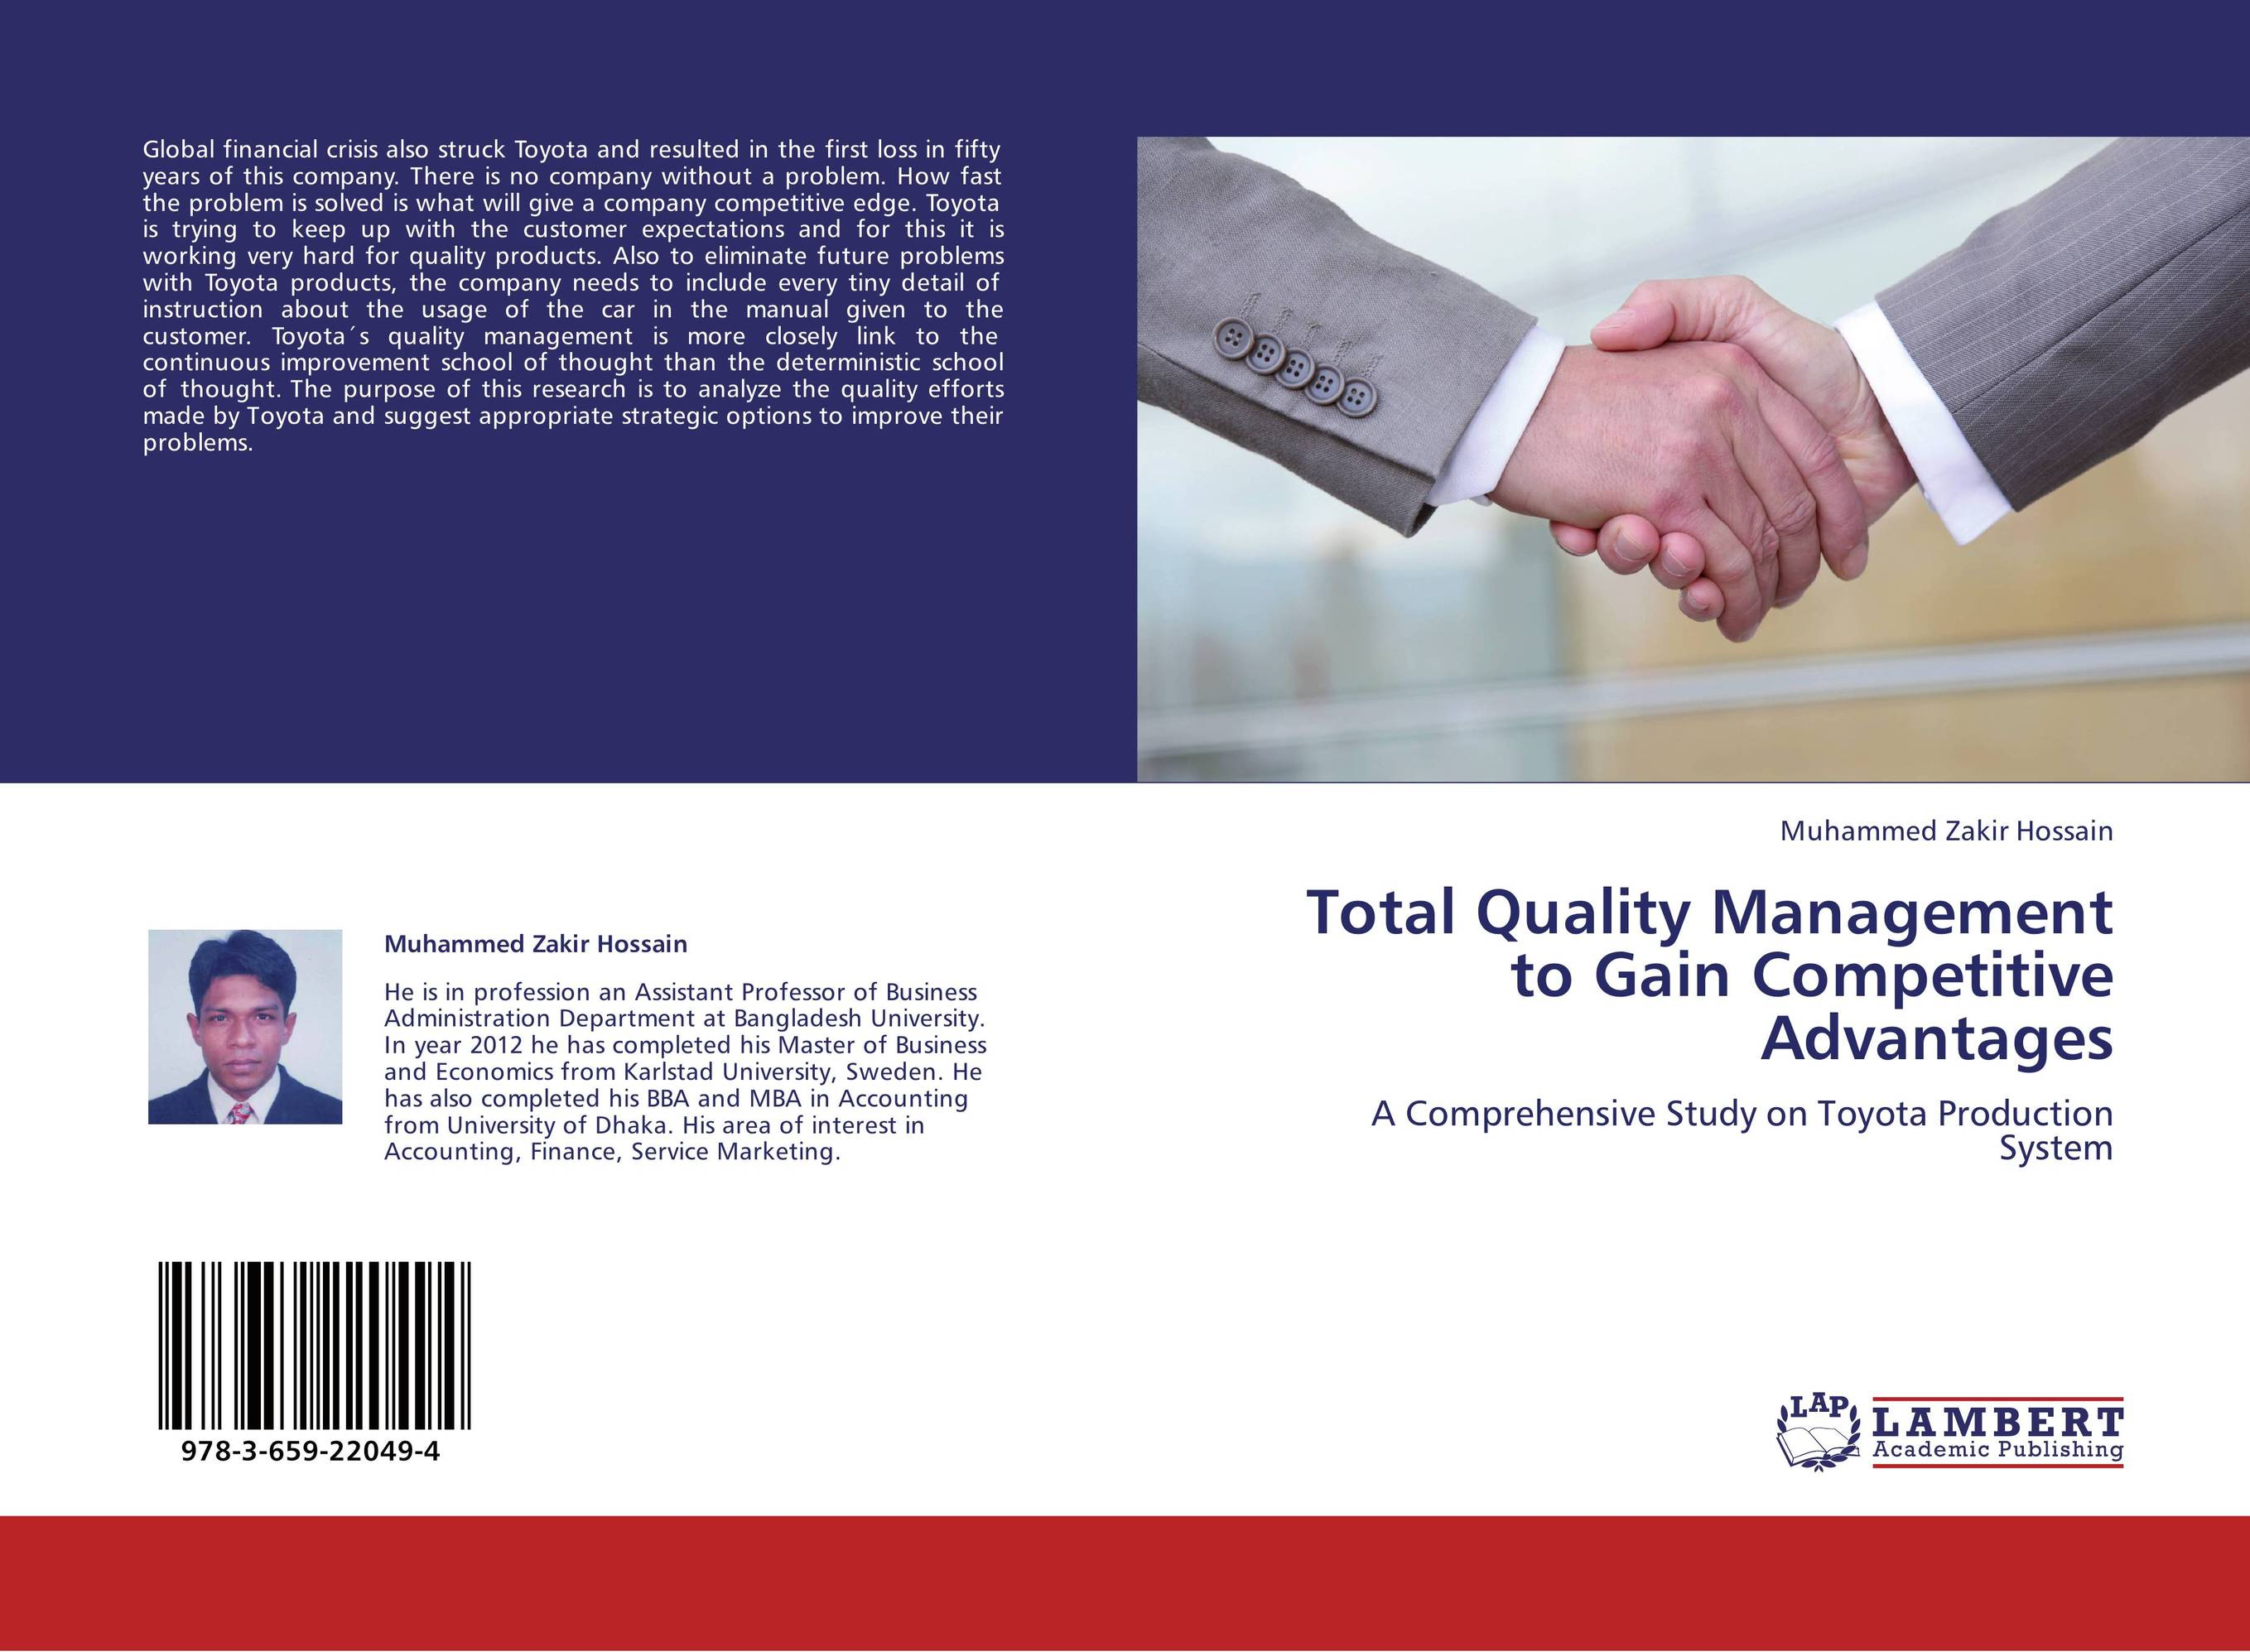 total quality management case study toyota Tags: toyota tqm, total quality management in toyota, toyota total quality management, tqm and toyota, toyota tqm analysis toyota case study business process engineering and viable system diagnosis: corporate web site development (isp solutions plc case study.